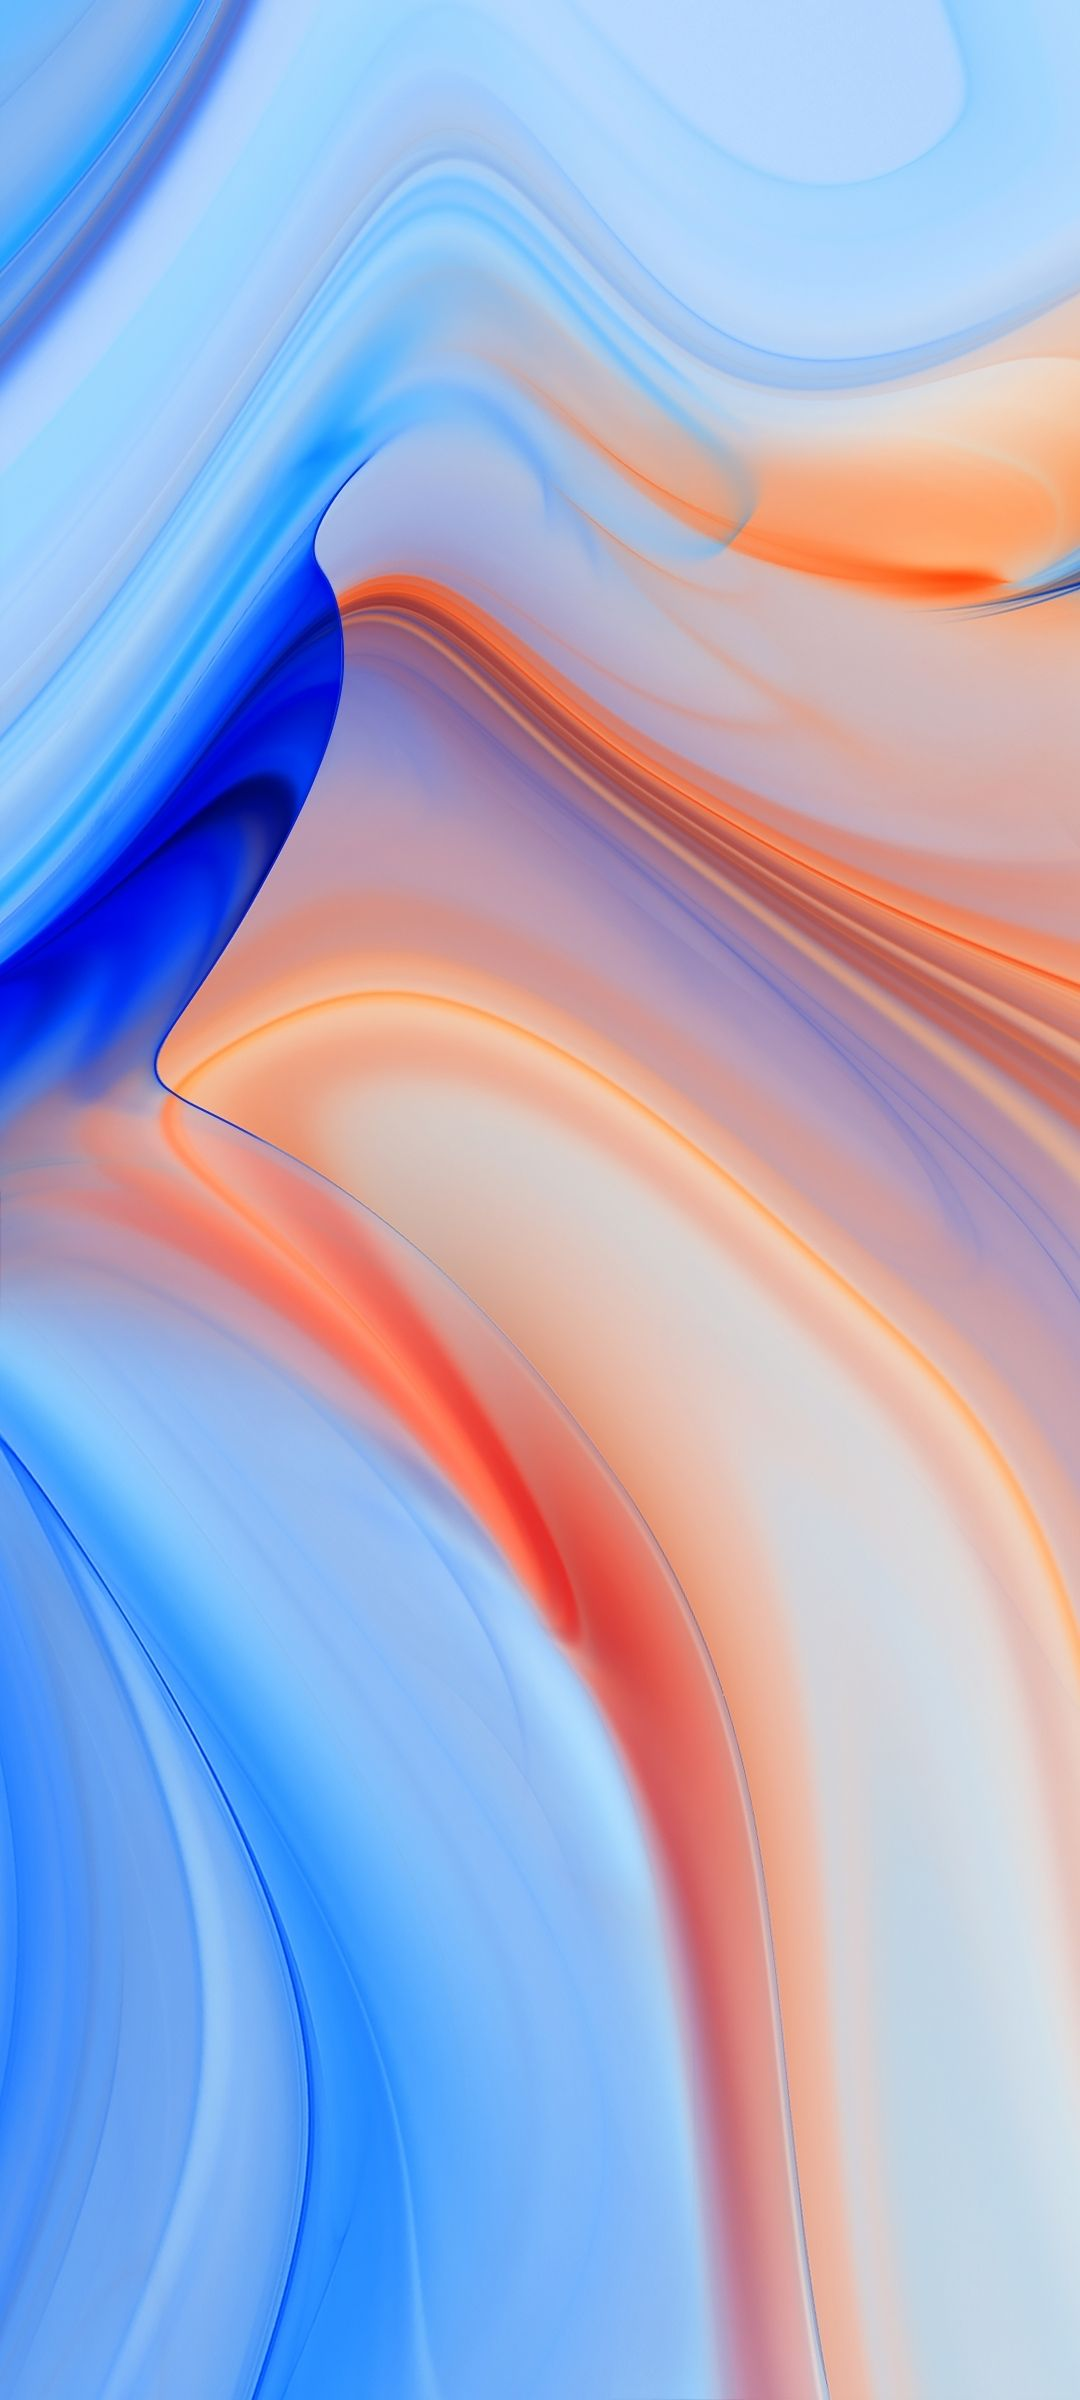 Oppo Reno 4 Pro Wallpapers Ytechb Exclusive Phone Wallpaper Design Abstract Iphone Wallpaper Iphone Wallpaper Photos A collection of cool 3d wallpaper images